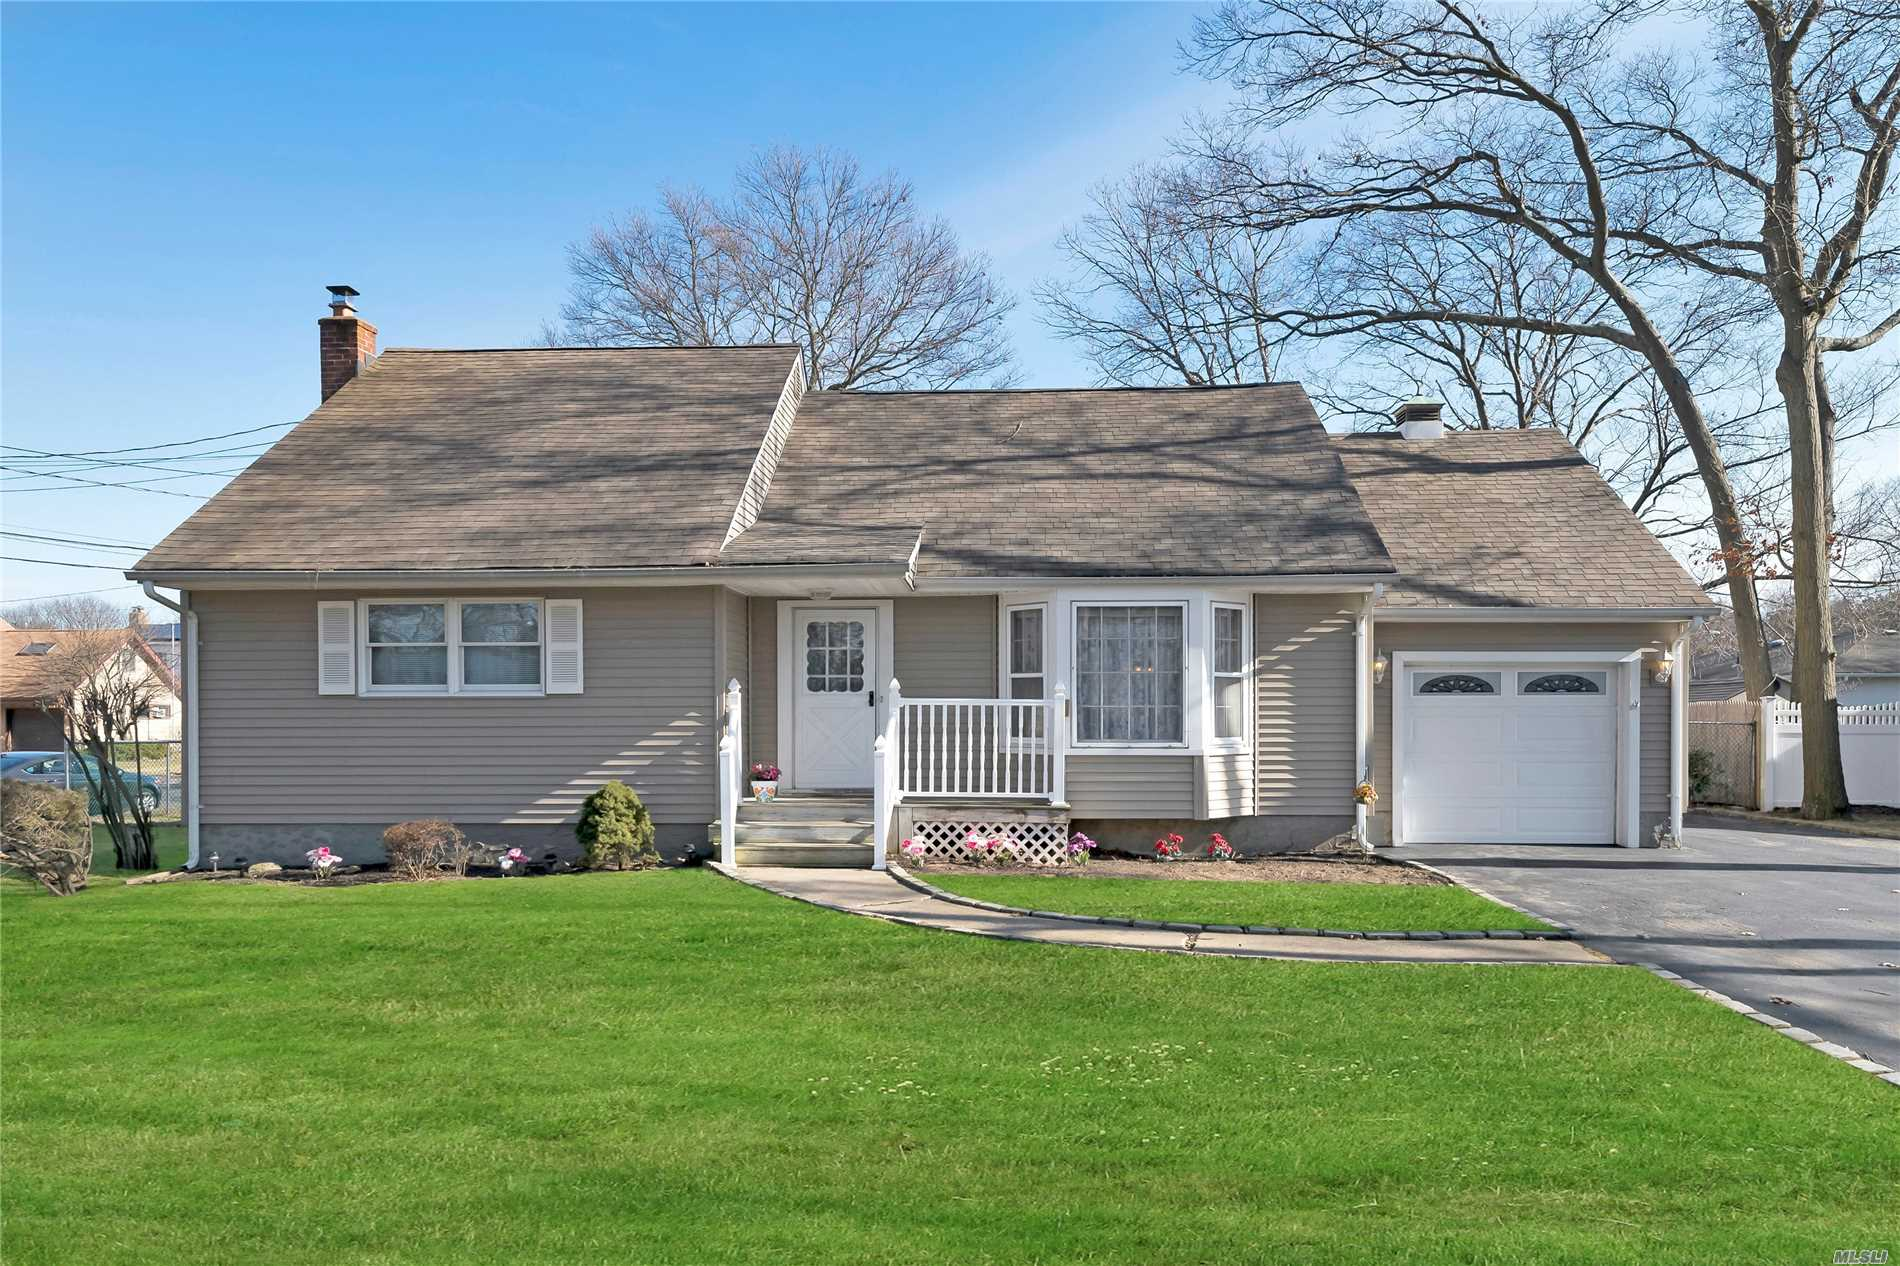 Very Well Maintained Spacious Home On A Large Corner Lot. Large Backyard With Room For Pool / Entertaining. Roof, Siding, Windows And Burner All Replaced Within 10-15 Years. Hardwood Floors, Beam And Plank Ceiling In Dining Room, Full Unfinished Basement. Priced To Sell. Move In Ready.